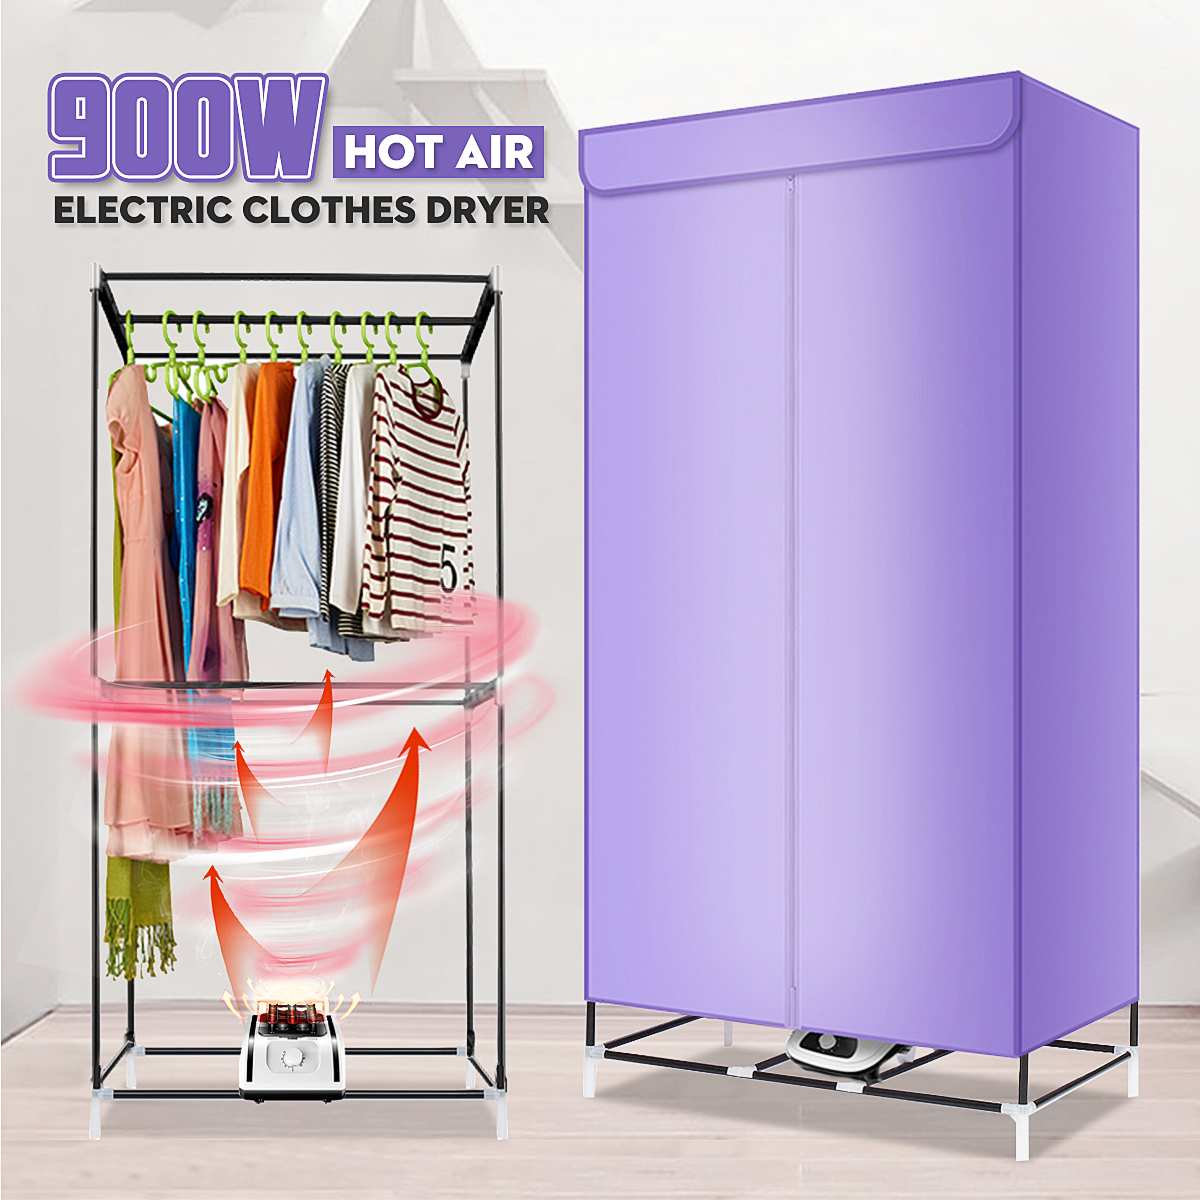 900W 220V Electric Cloth Dryer Household Portable Baby Cloth Shoes Boots Dryer Power Motor Drying Warm wWnd Laundry Garment900W 220V Electric Cloth Dryer Household Portable Baby Cloth Shoes Boots Dryer Power Motor Drying Warm wWnd Laundry Garment